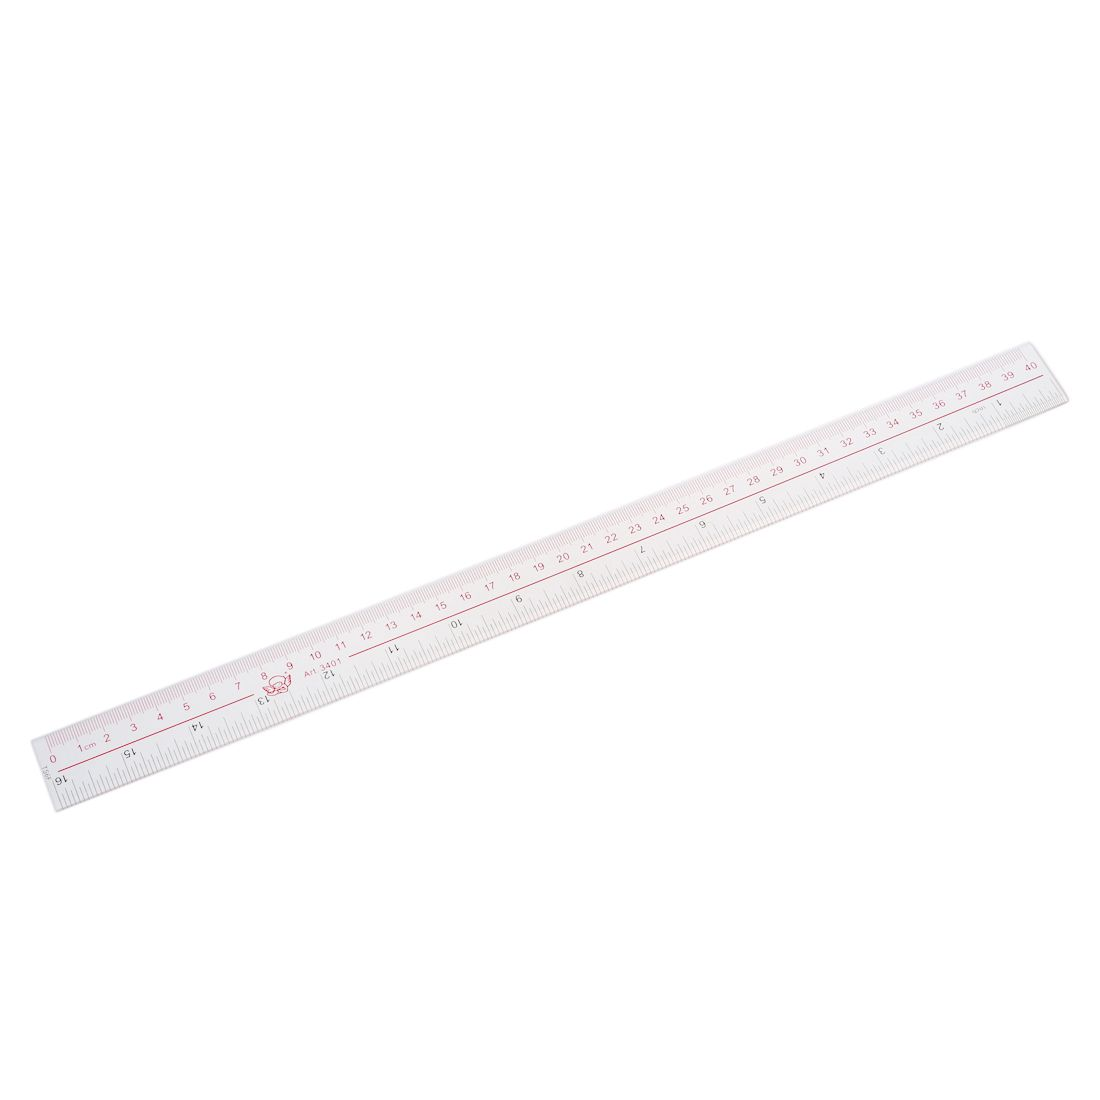 40cm 16 Inches Length Measure Clear Plastic Straight Edge